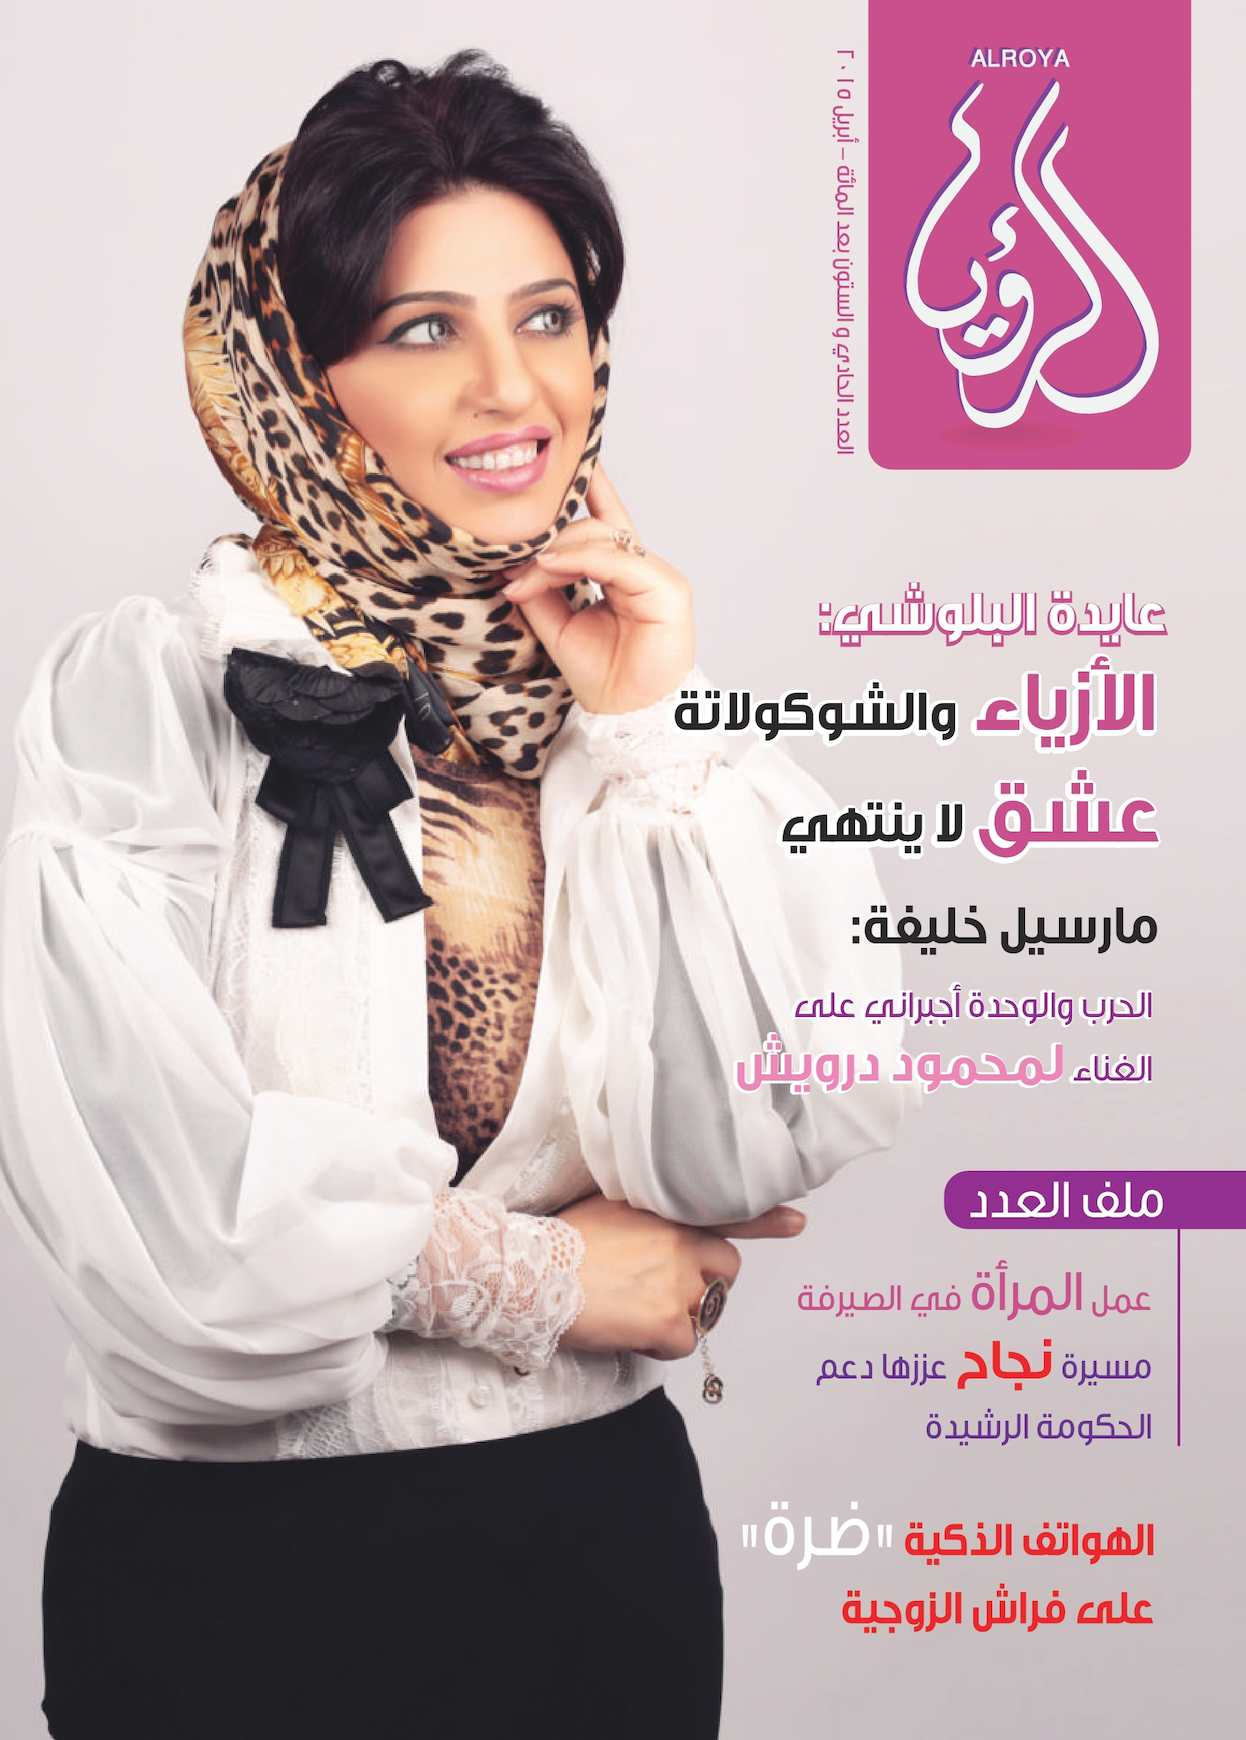 0a92df262c6e6 Calaméo - April 2015 - alroya magazine